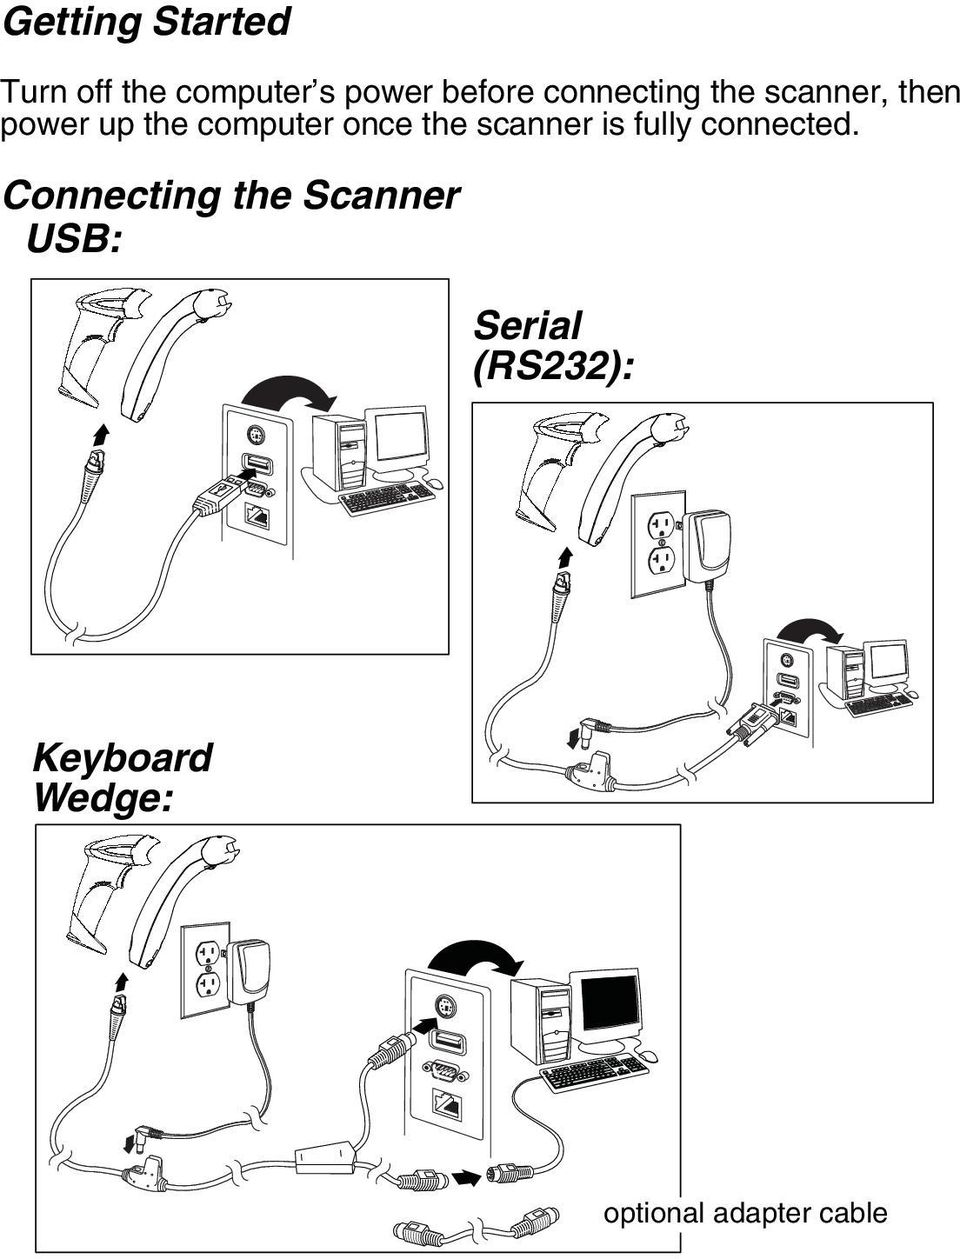 the scanner is fully connected.